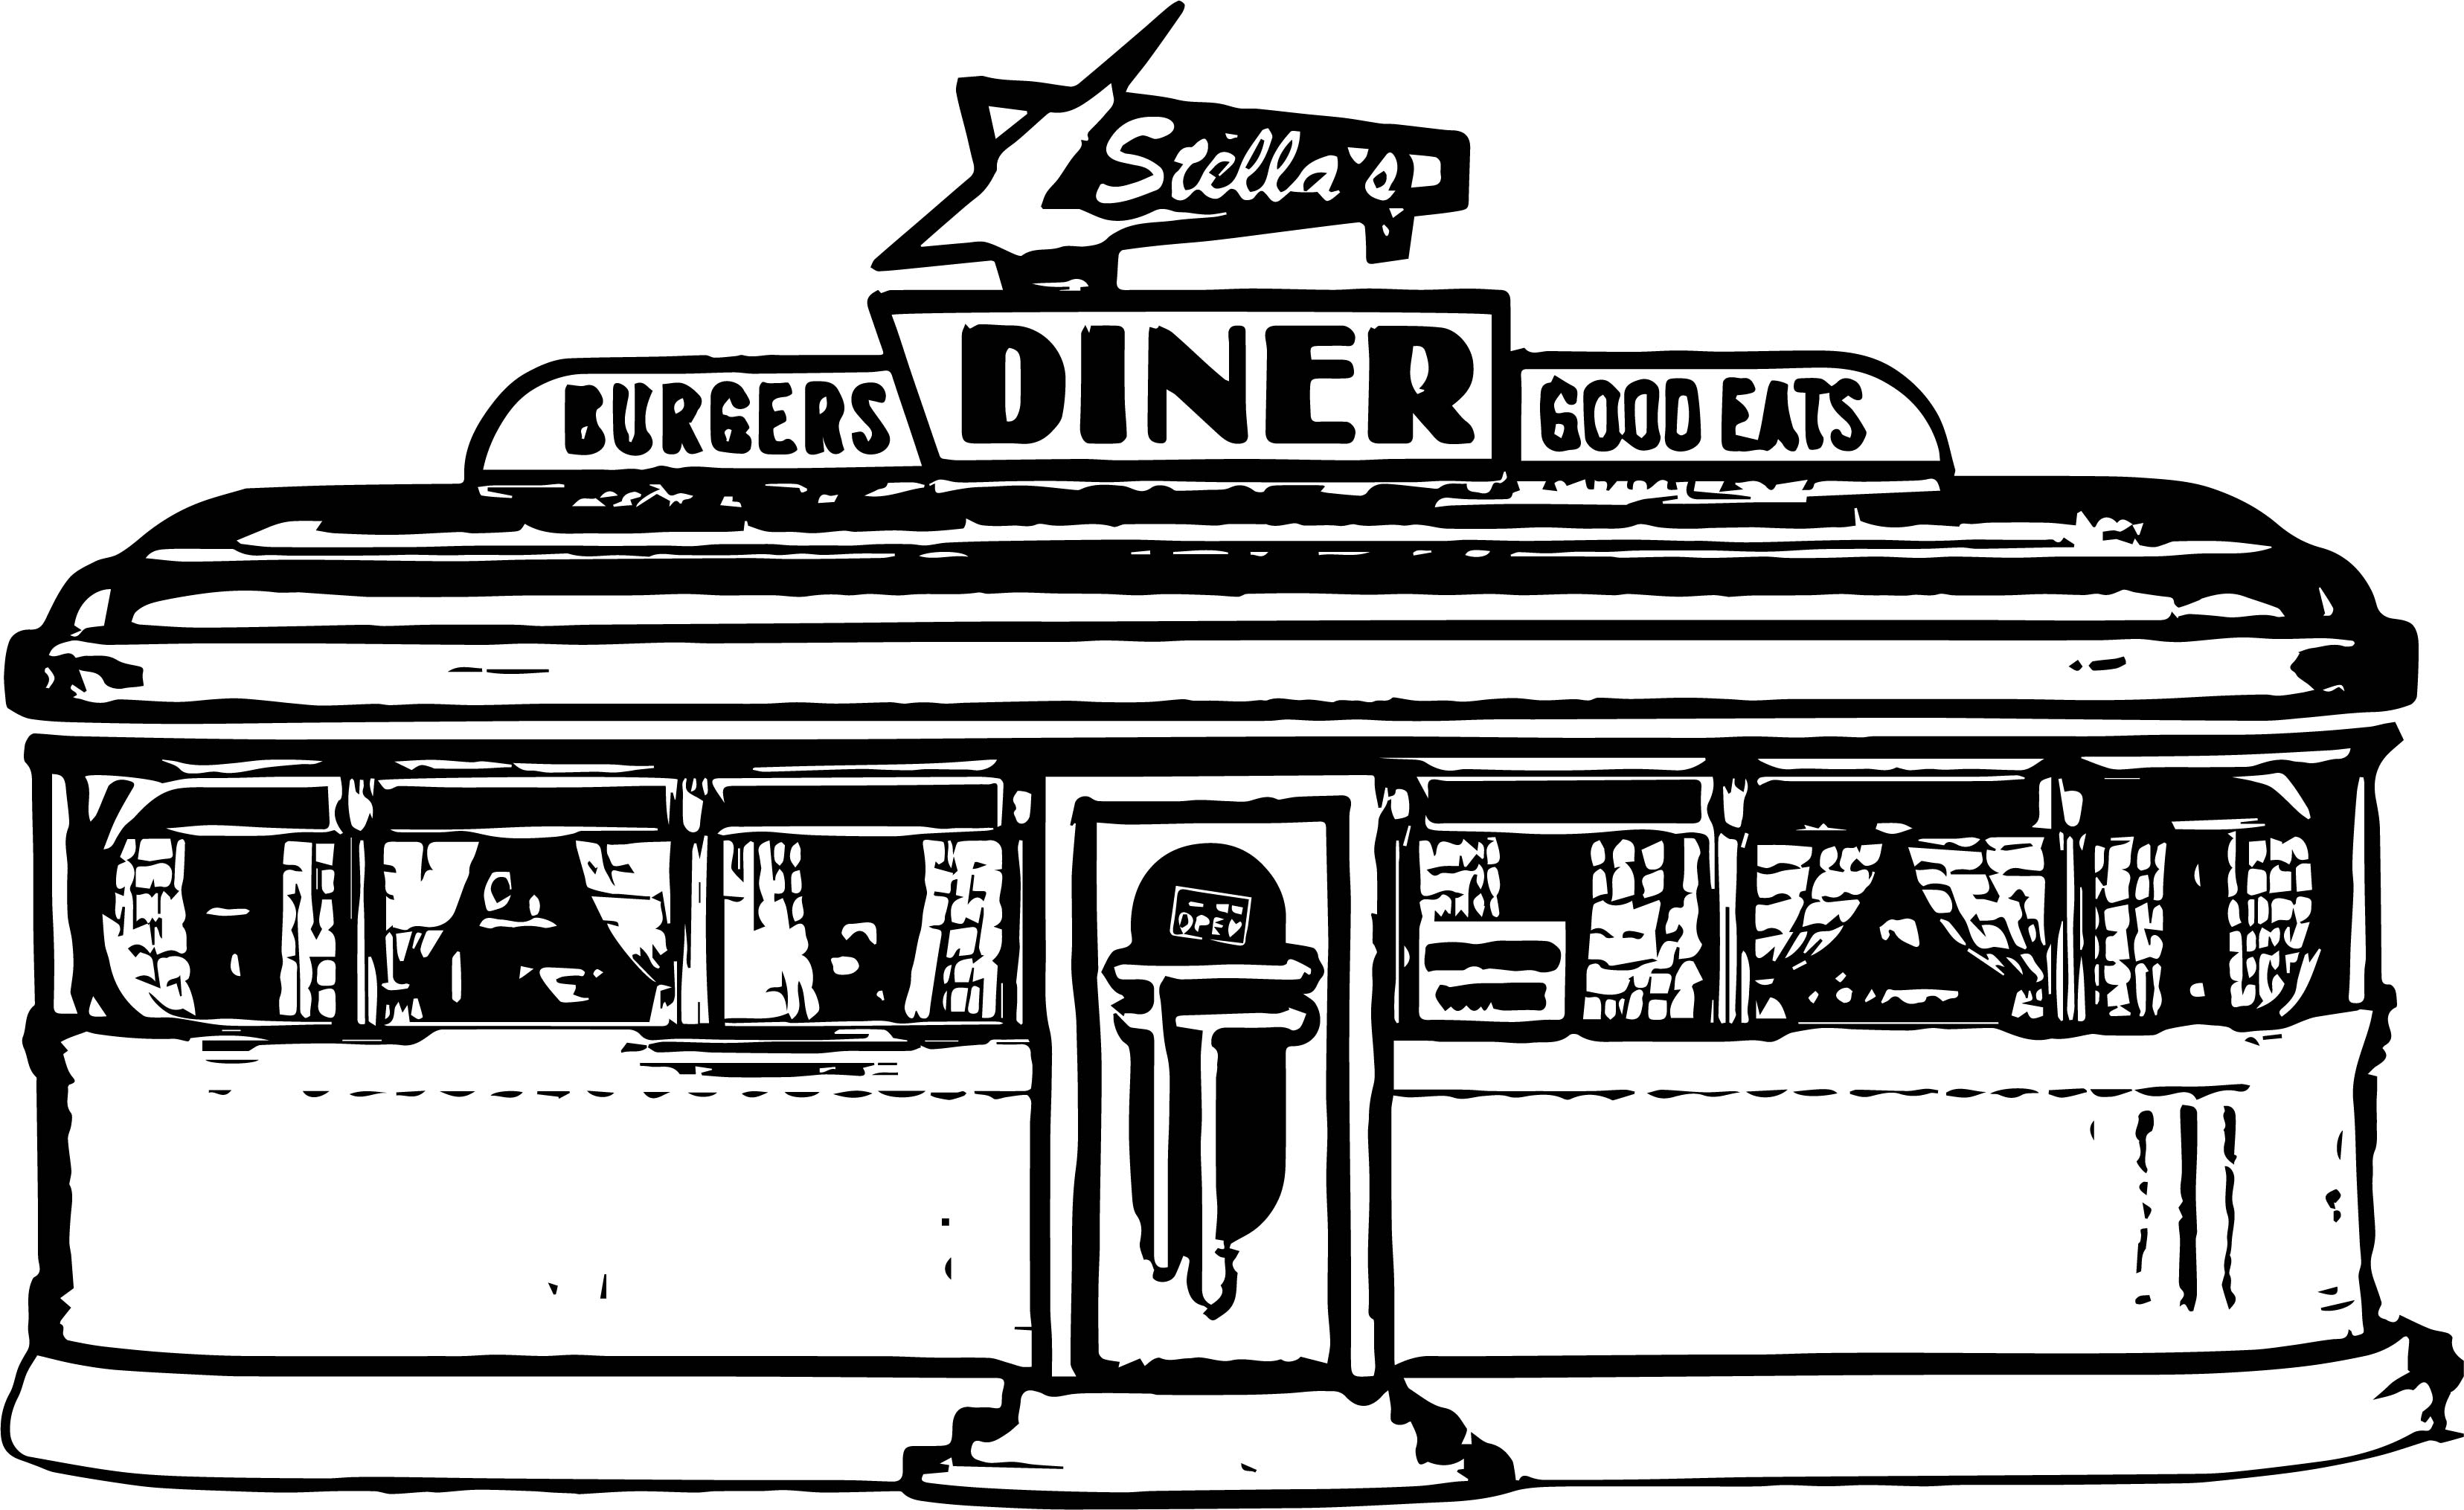 Burgers diners good eats stella restaurant coloring page Coloring book cafe